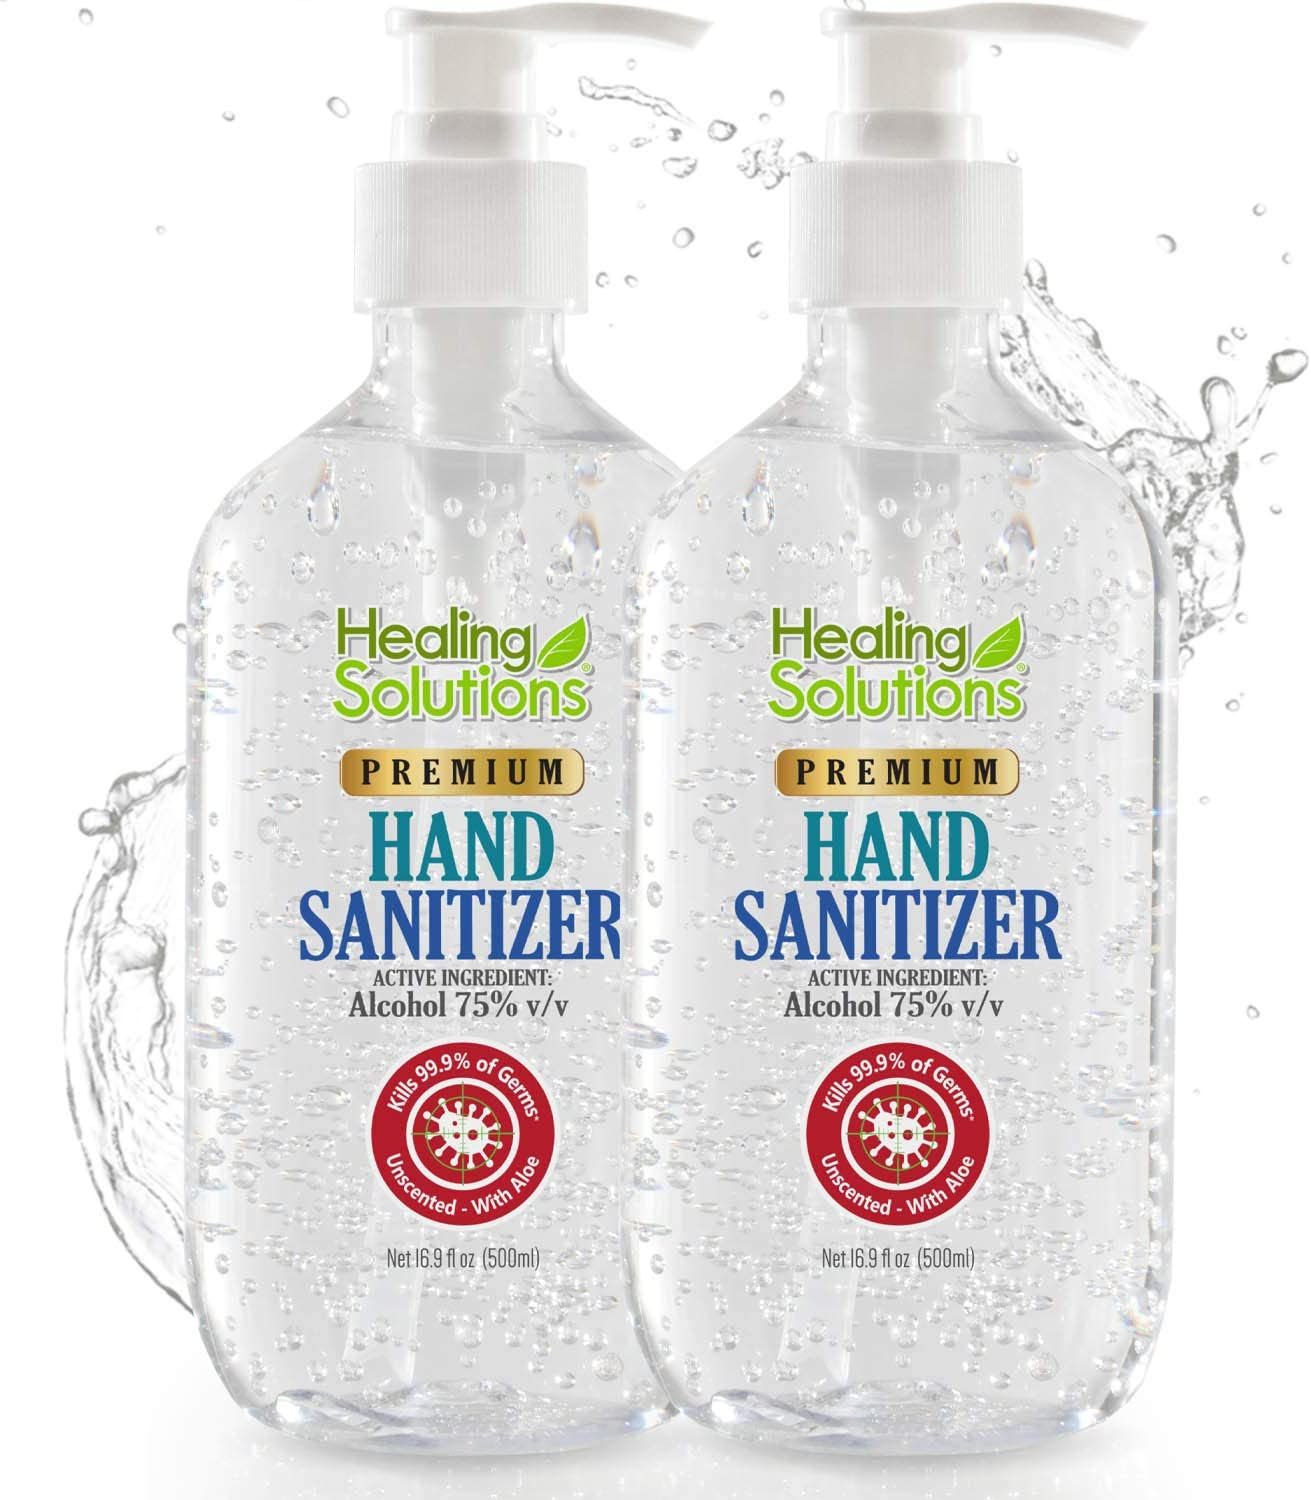 Hand Sanitizer Gel (2 Pack x 16.9oz) - 75% Alcohol - Kills 99.99% of Germs - Scent Free Antibacterial Gel with Vitamin E & Aloe for Moisturizing : Beauty